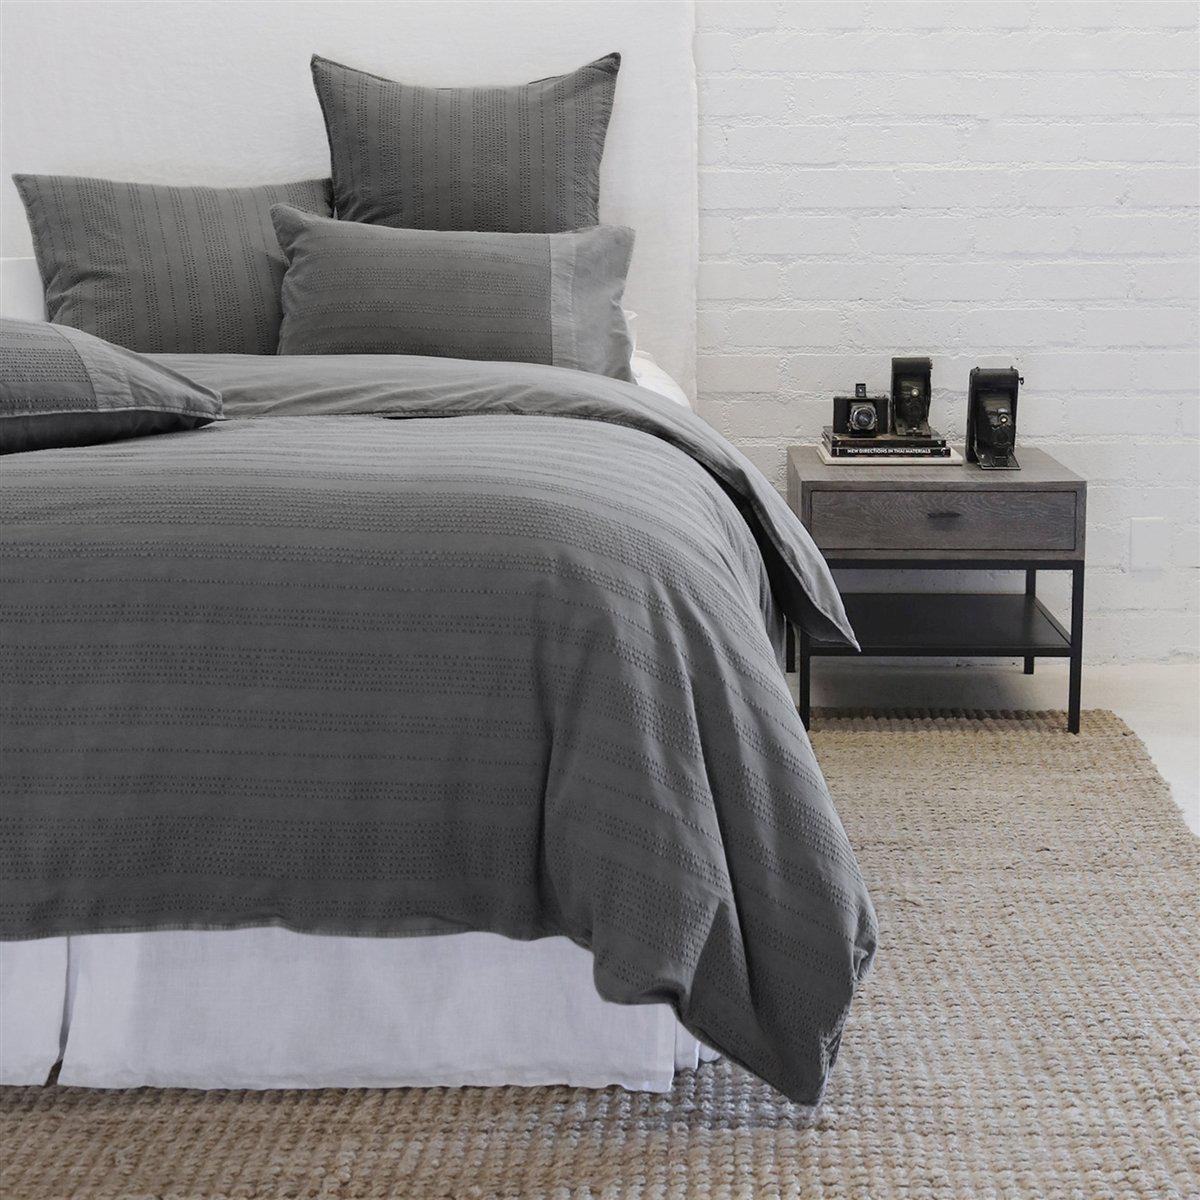 Quinn Duvet by Pom Pom at Home-Bed & Bath-Queen-Grey-A Cottage in the City